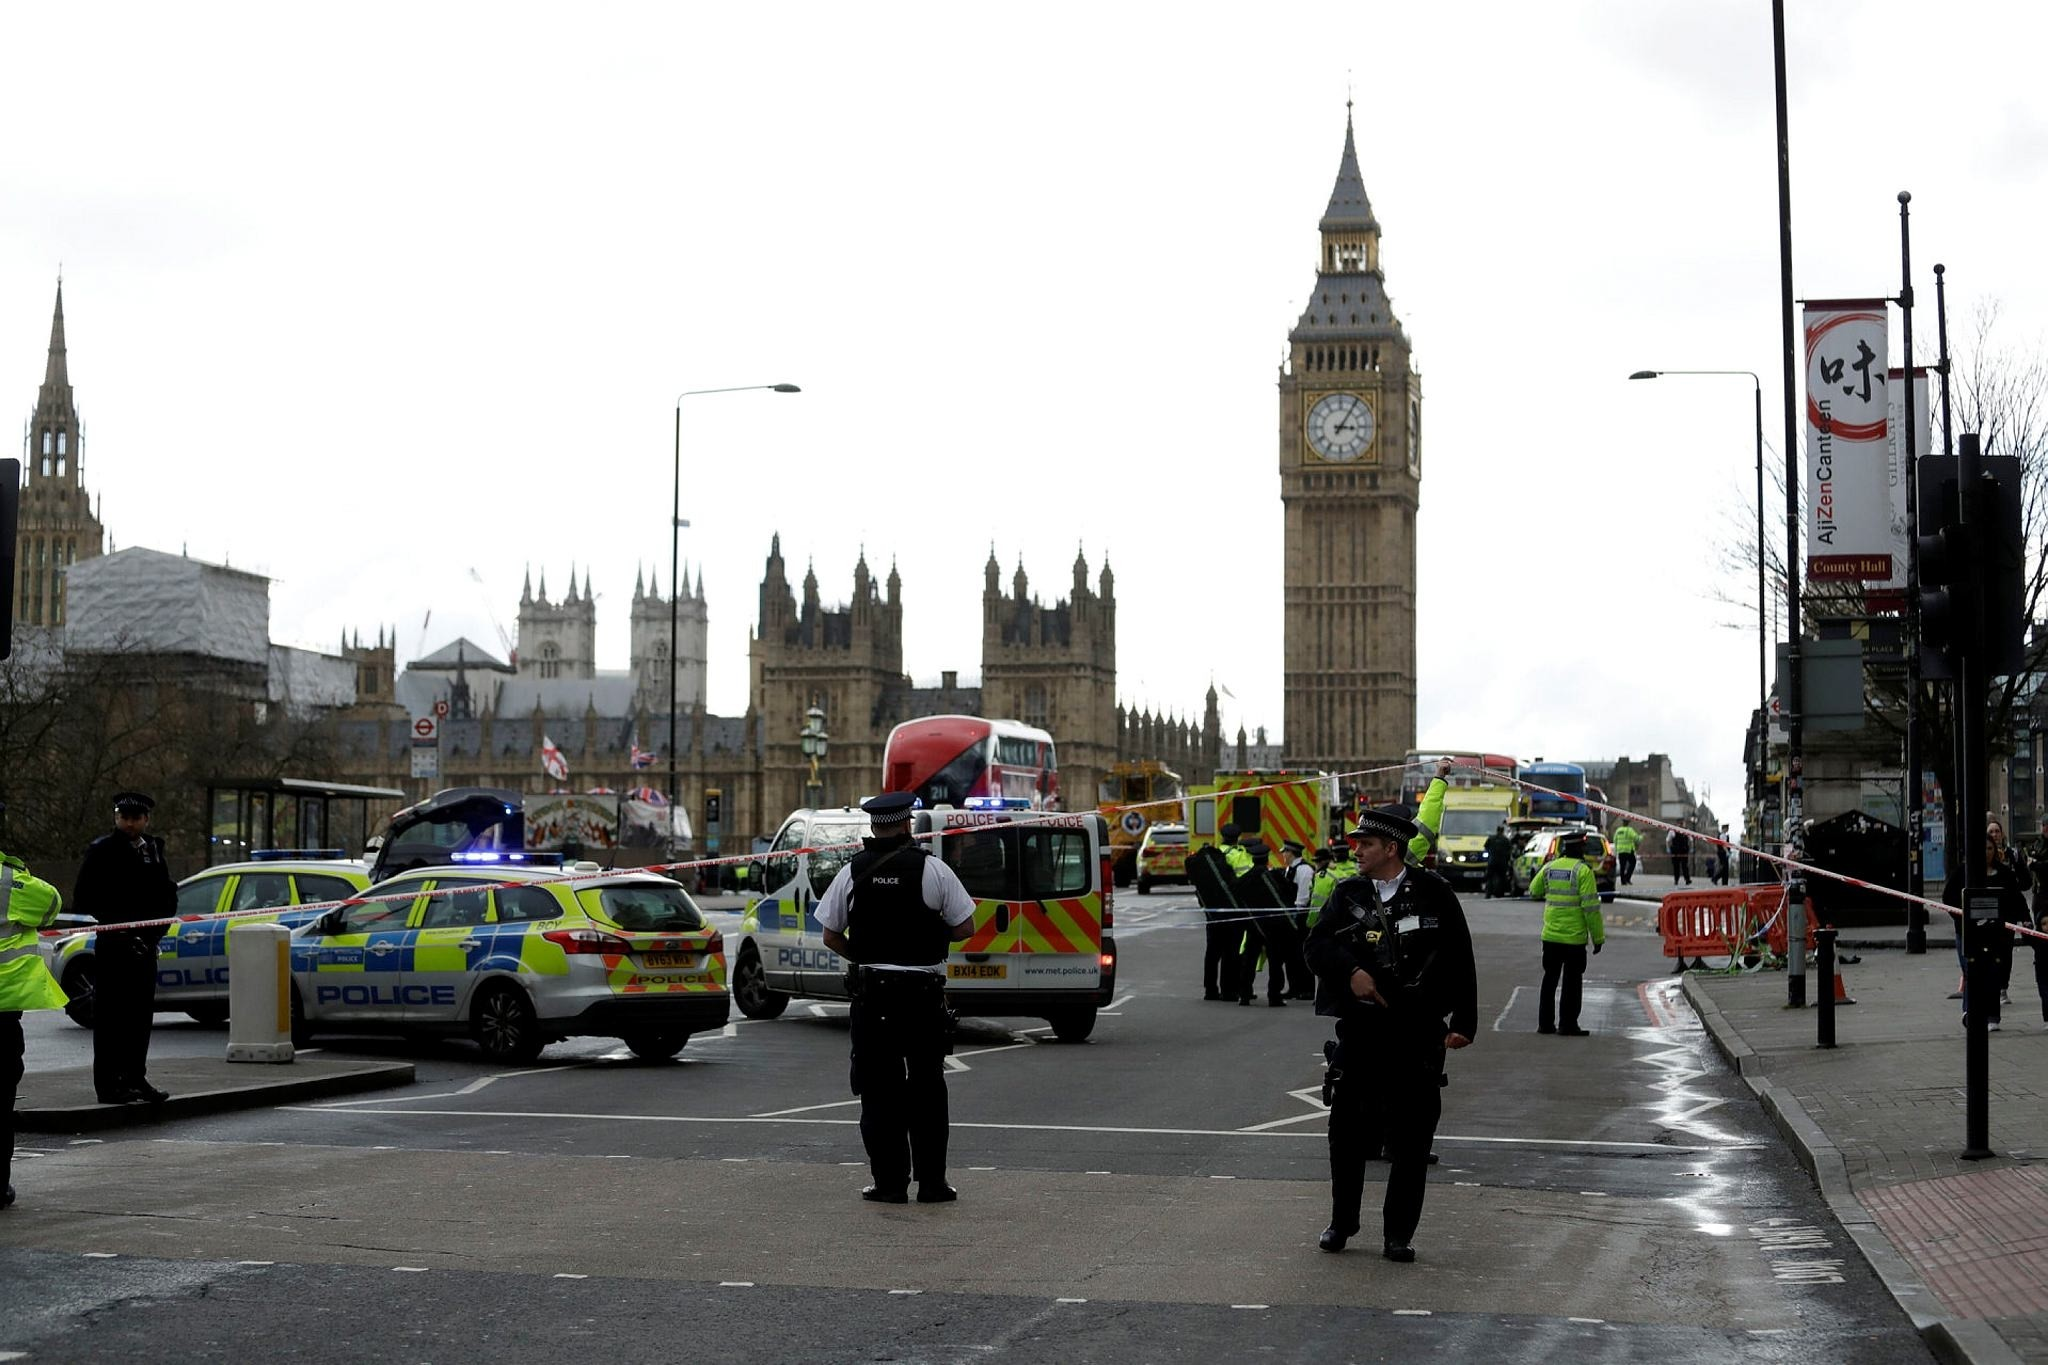 Police secure the area on the south side of Westminster Bridge close to the Houses of Parliament in London, Wednesday, March 22, 2017. (AP Photo)